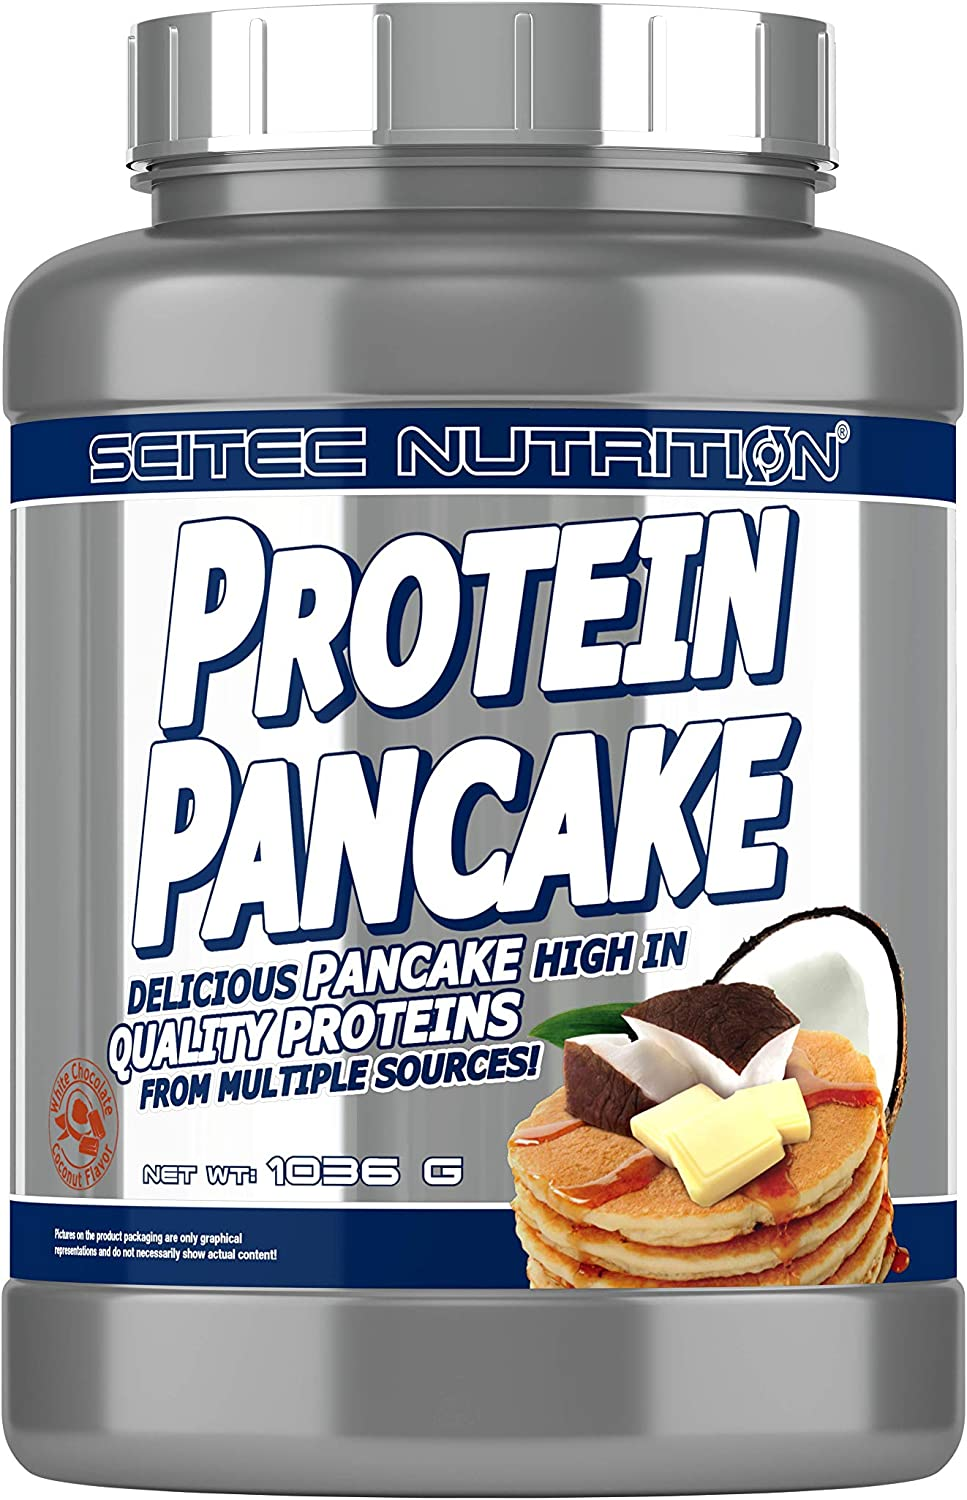 Scitec Nutrition Protein Pancake Mix - 2.28 Pound, White Chocolate Coconut 813GUS7MieLSL1500_